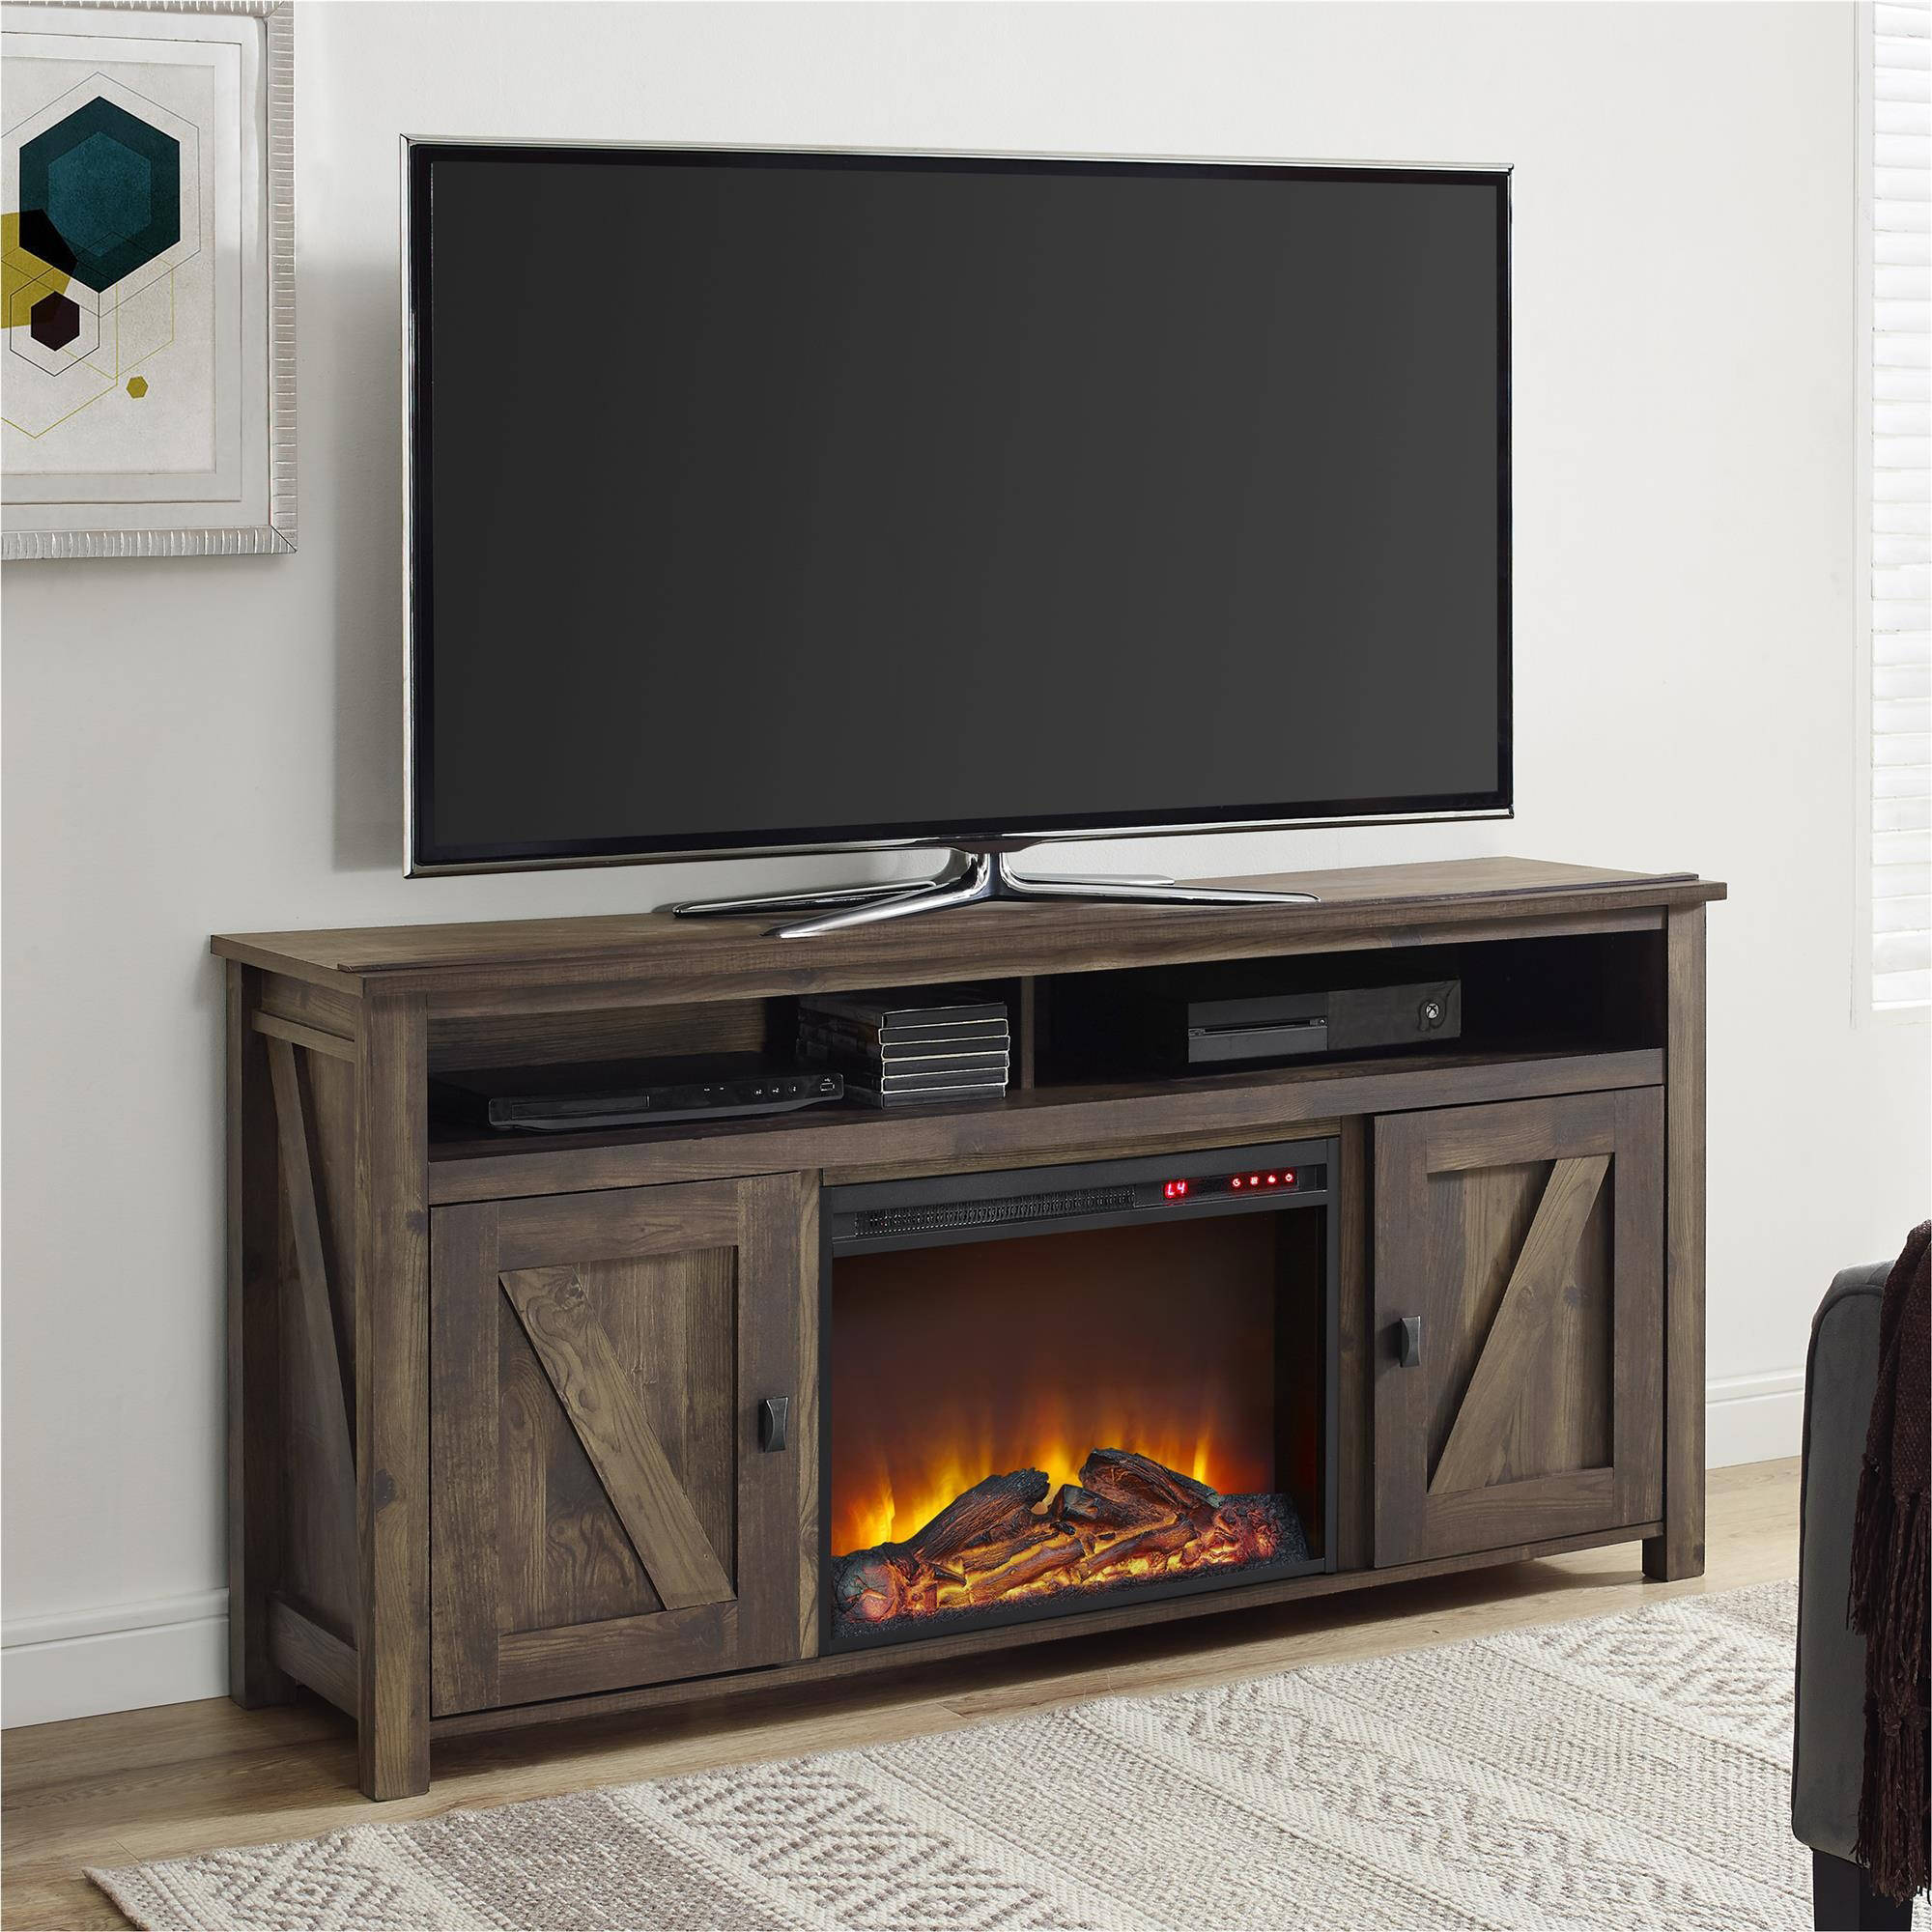 Farmington Electric Fireplace TV Console For TVs Multiple Colors And Sizes